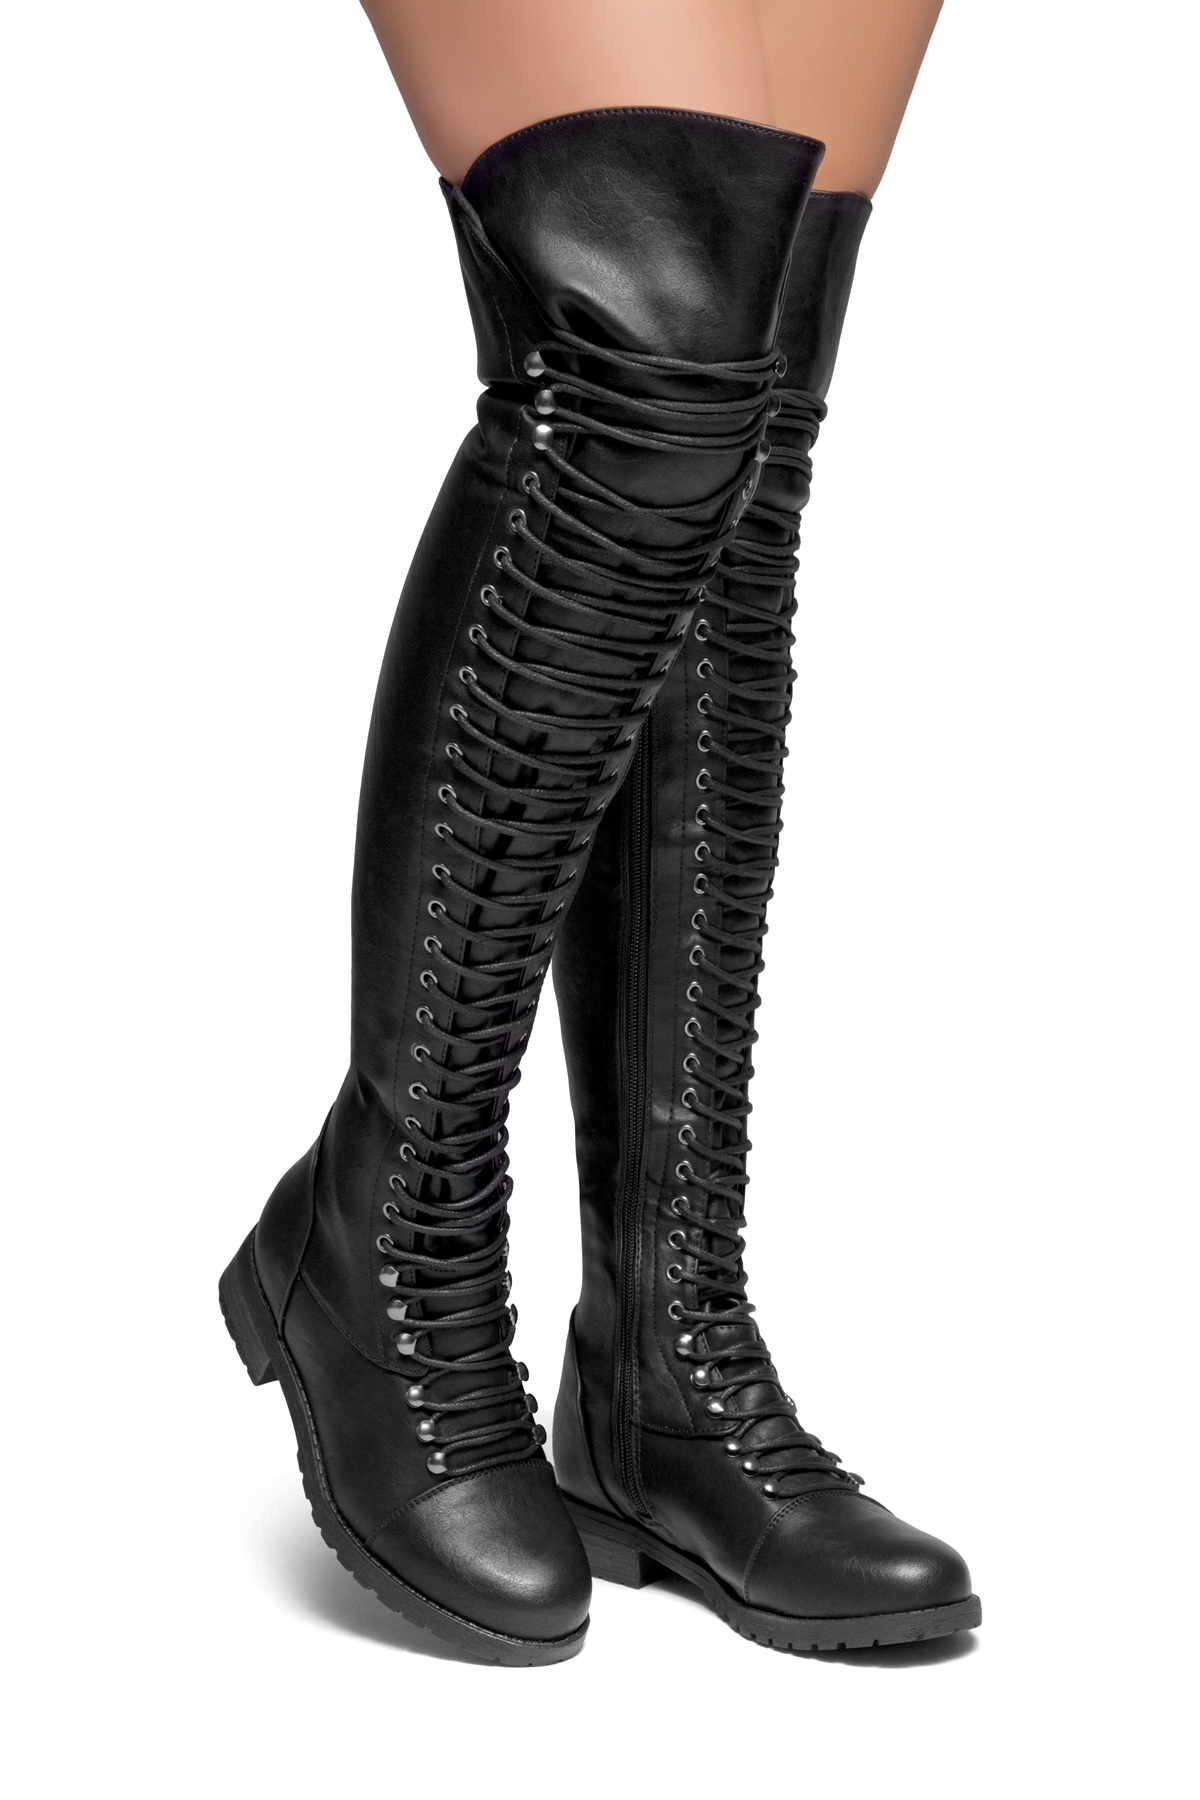 ebff149a2d5 HerStyle Kristrrina-Combat Lace up Over-The-Knee Boots(Black)